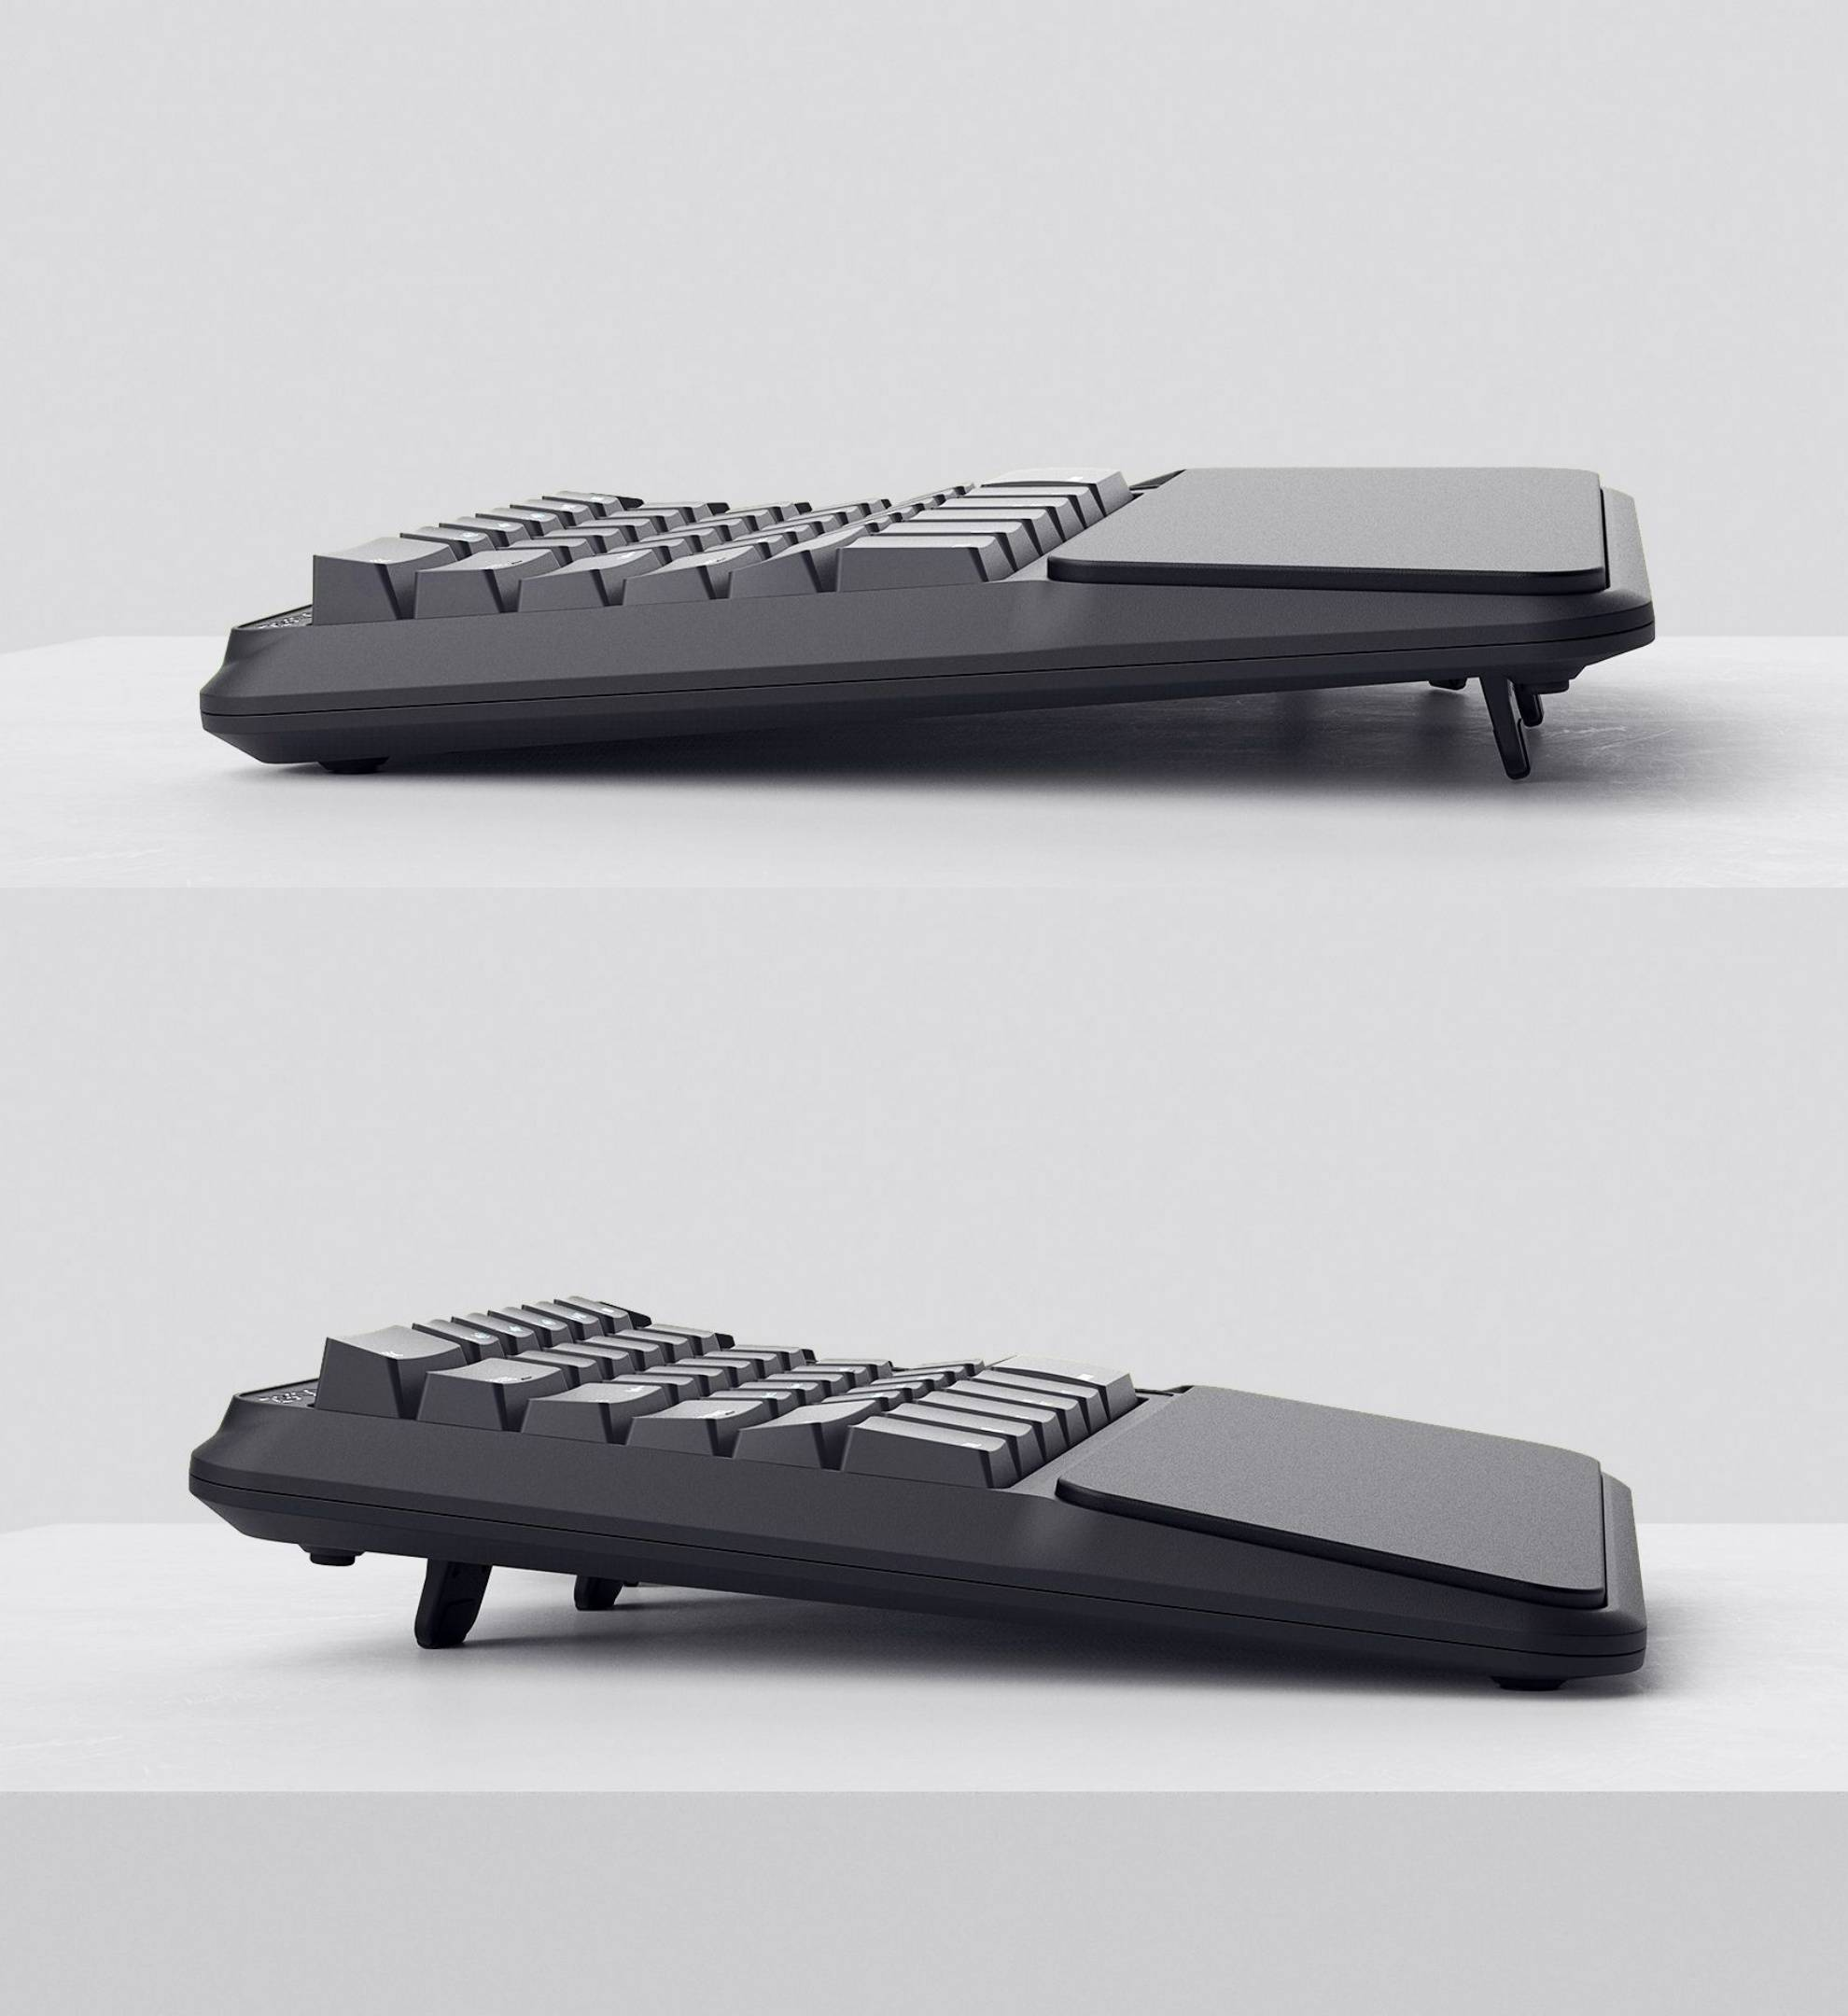 mechanical ergonomic keyboard palm wrist rest typing